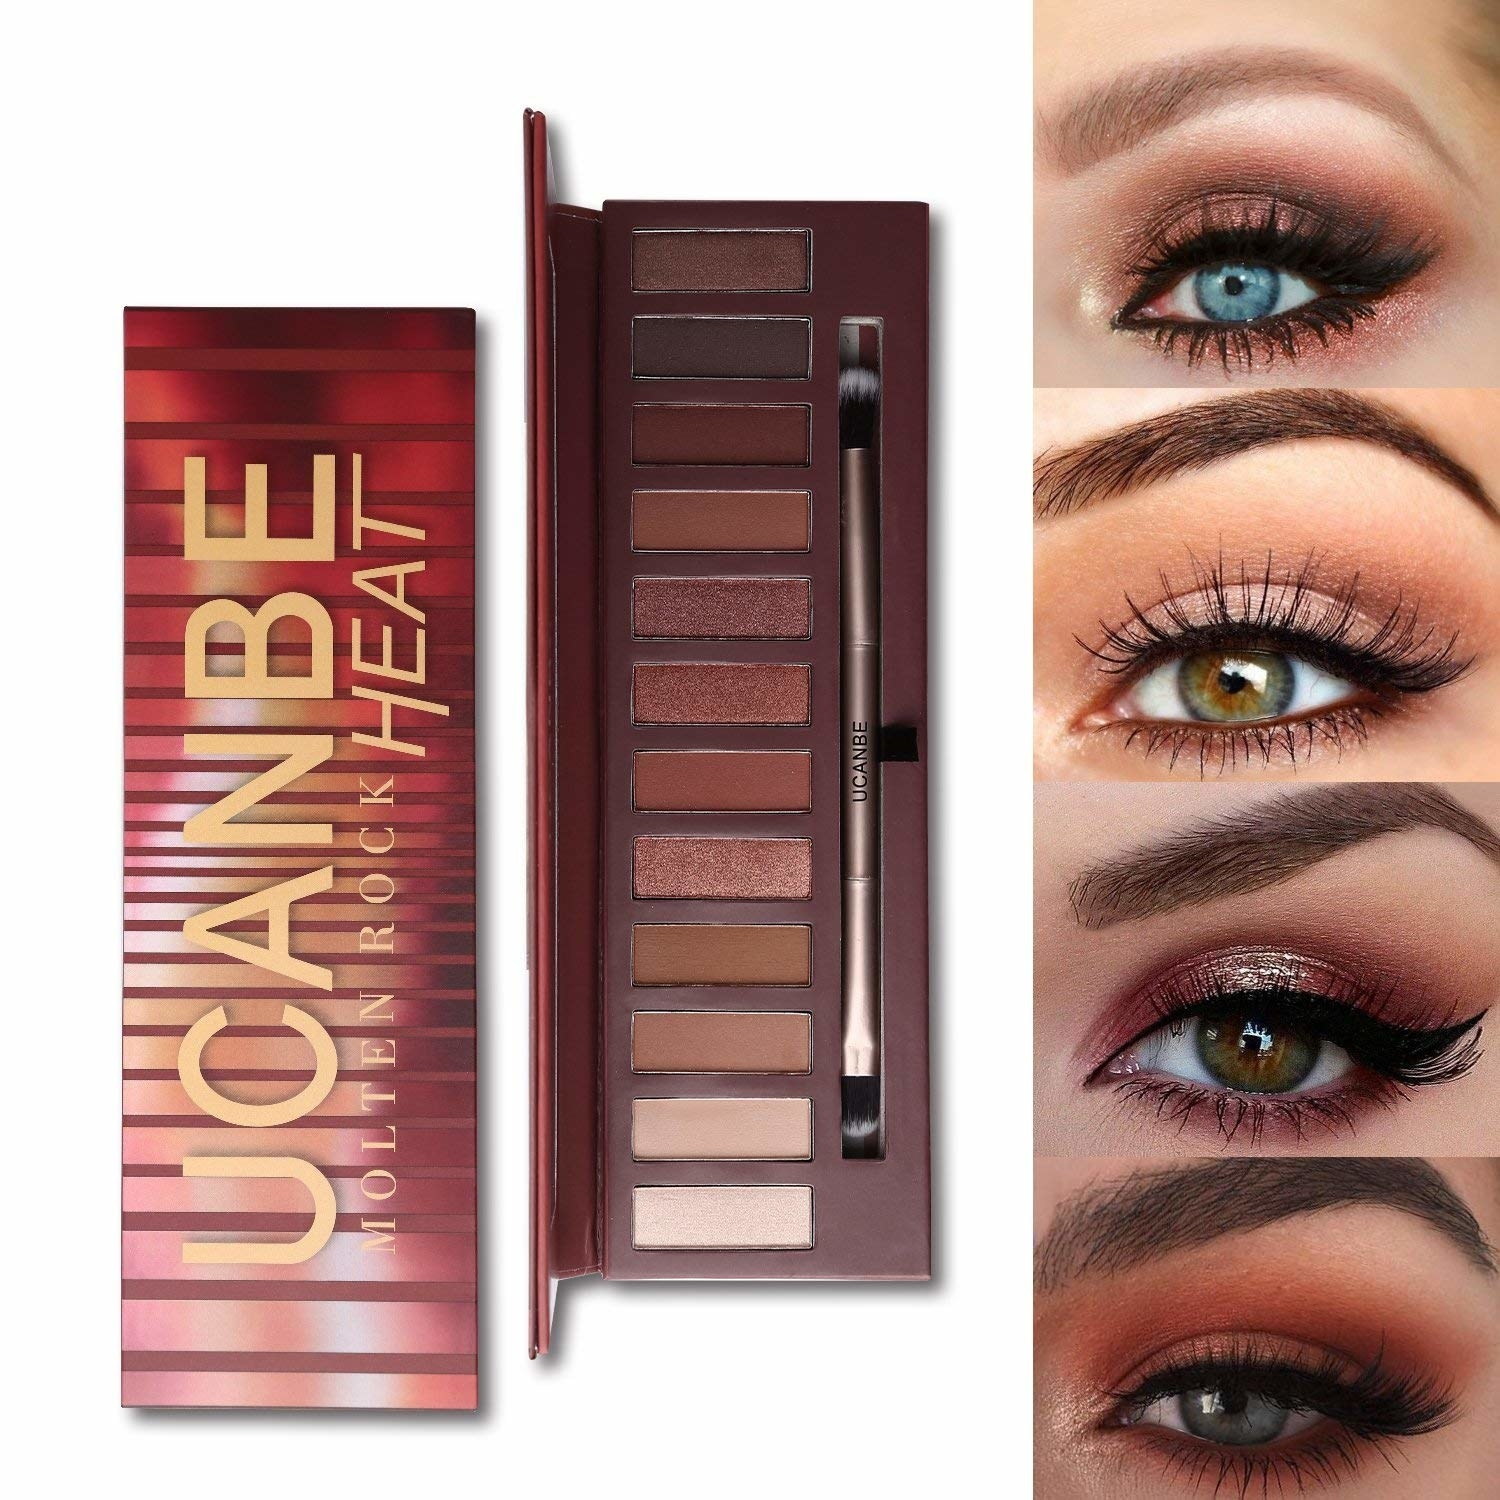 The Ucanbe palette with four models showing the smoky eye looks you can make from it